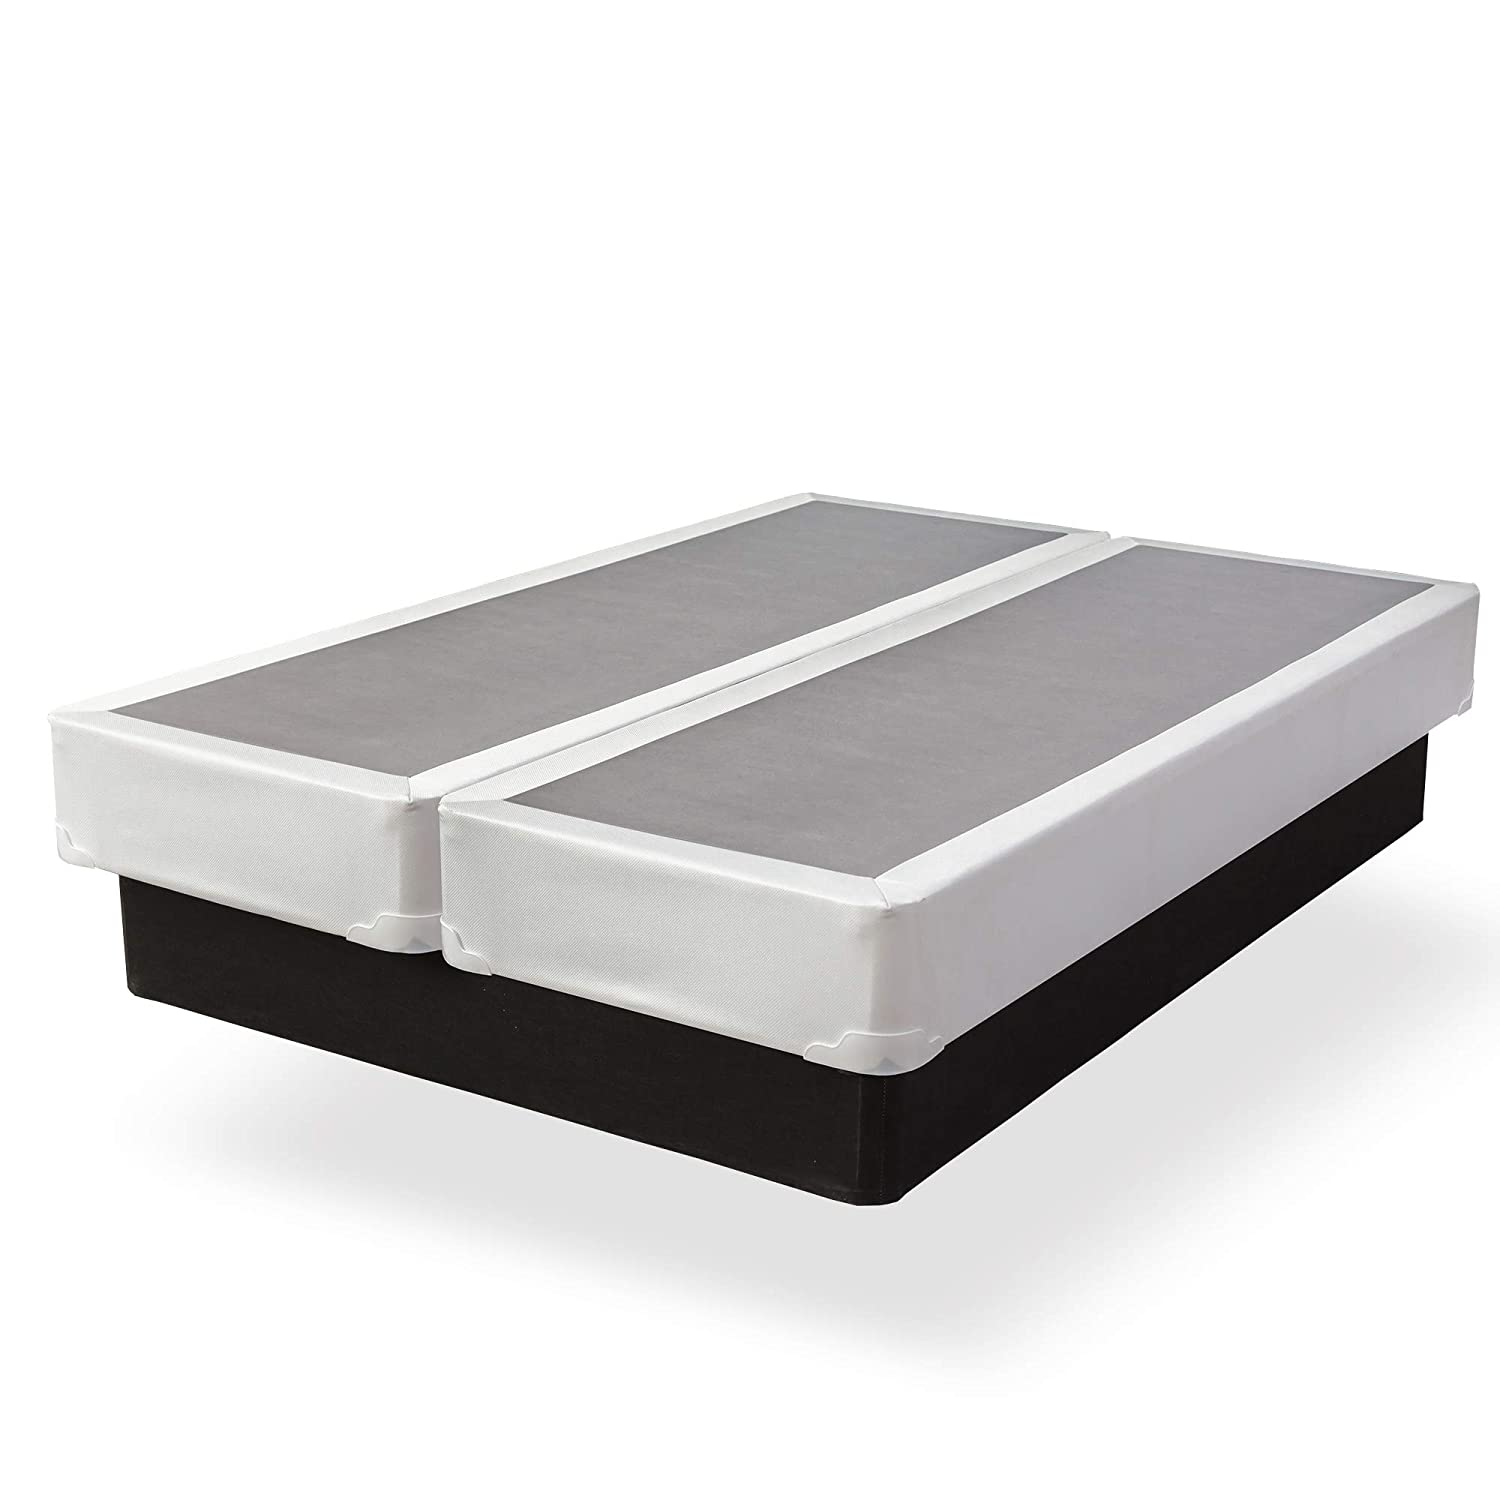 Continental Sleep 440N-3//3-2 Medium Plush Mattress twin